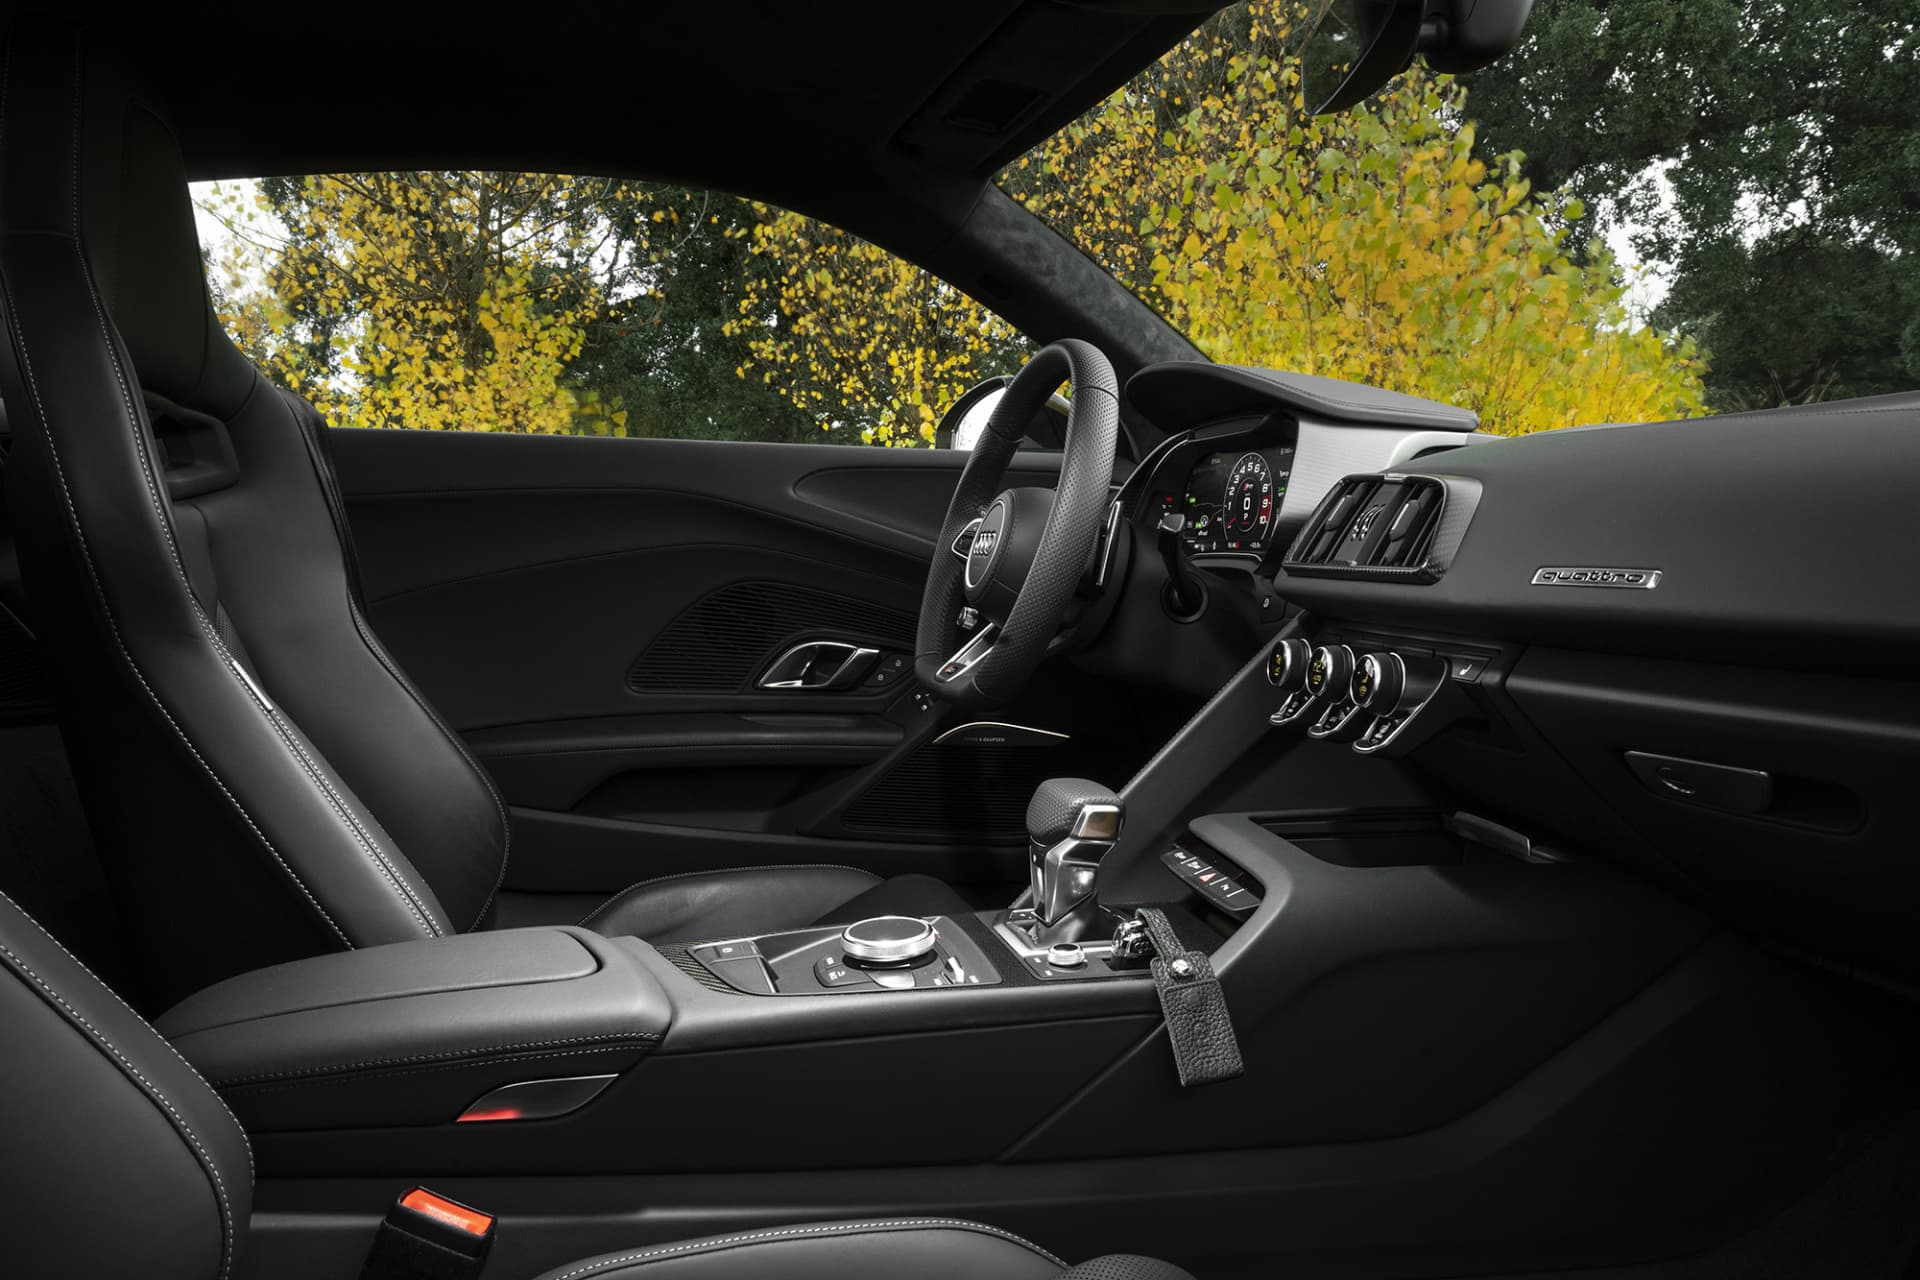 The interior of the V8 is sober and sporty. Only the bare necessities are displayed and the interface is easy to understand. Unlike its Lamborghini equivalent, Huracán, the R8 is relatively spacious.